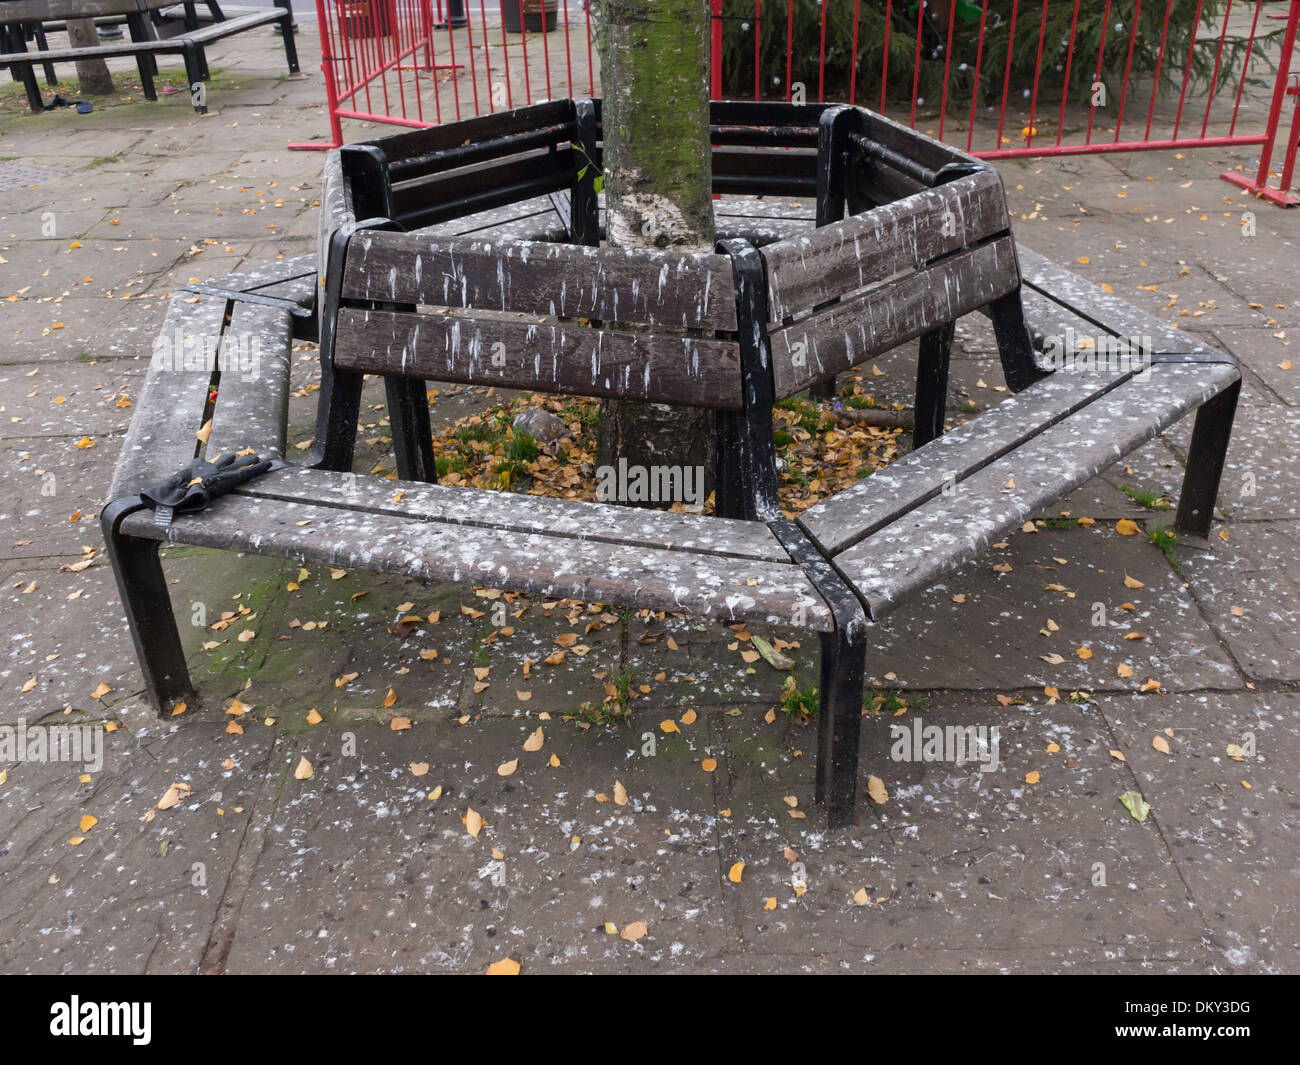 Public seat around a tree in a town square unusable because it is covered with droppings from roosting birds - Stock Image